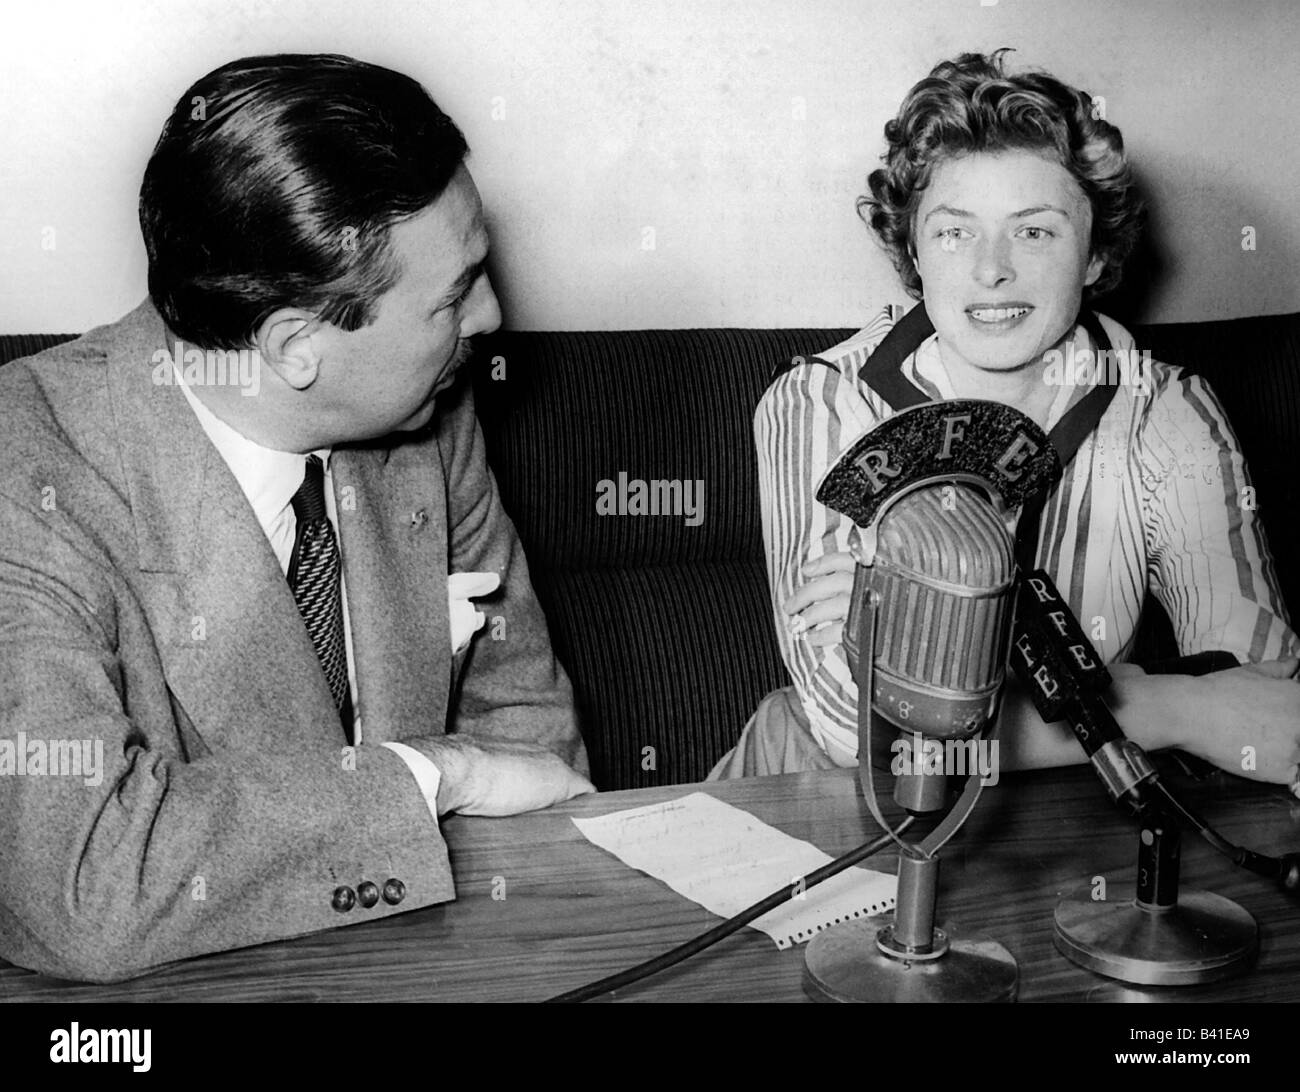 Bergman, Ingrid, 29.8.1915 - 29.8.1982, Swedish actress, half length, during interview by Adam Clayton Powell, 21.8.1954, - Stock Image